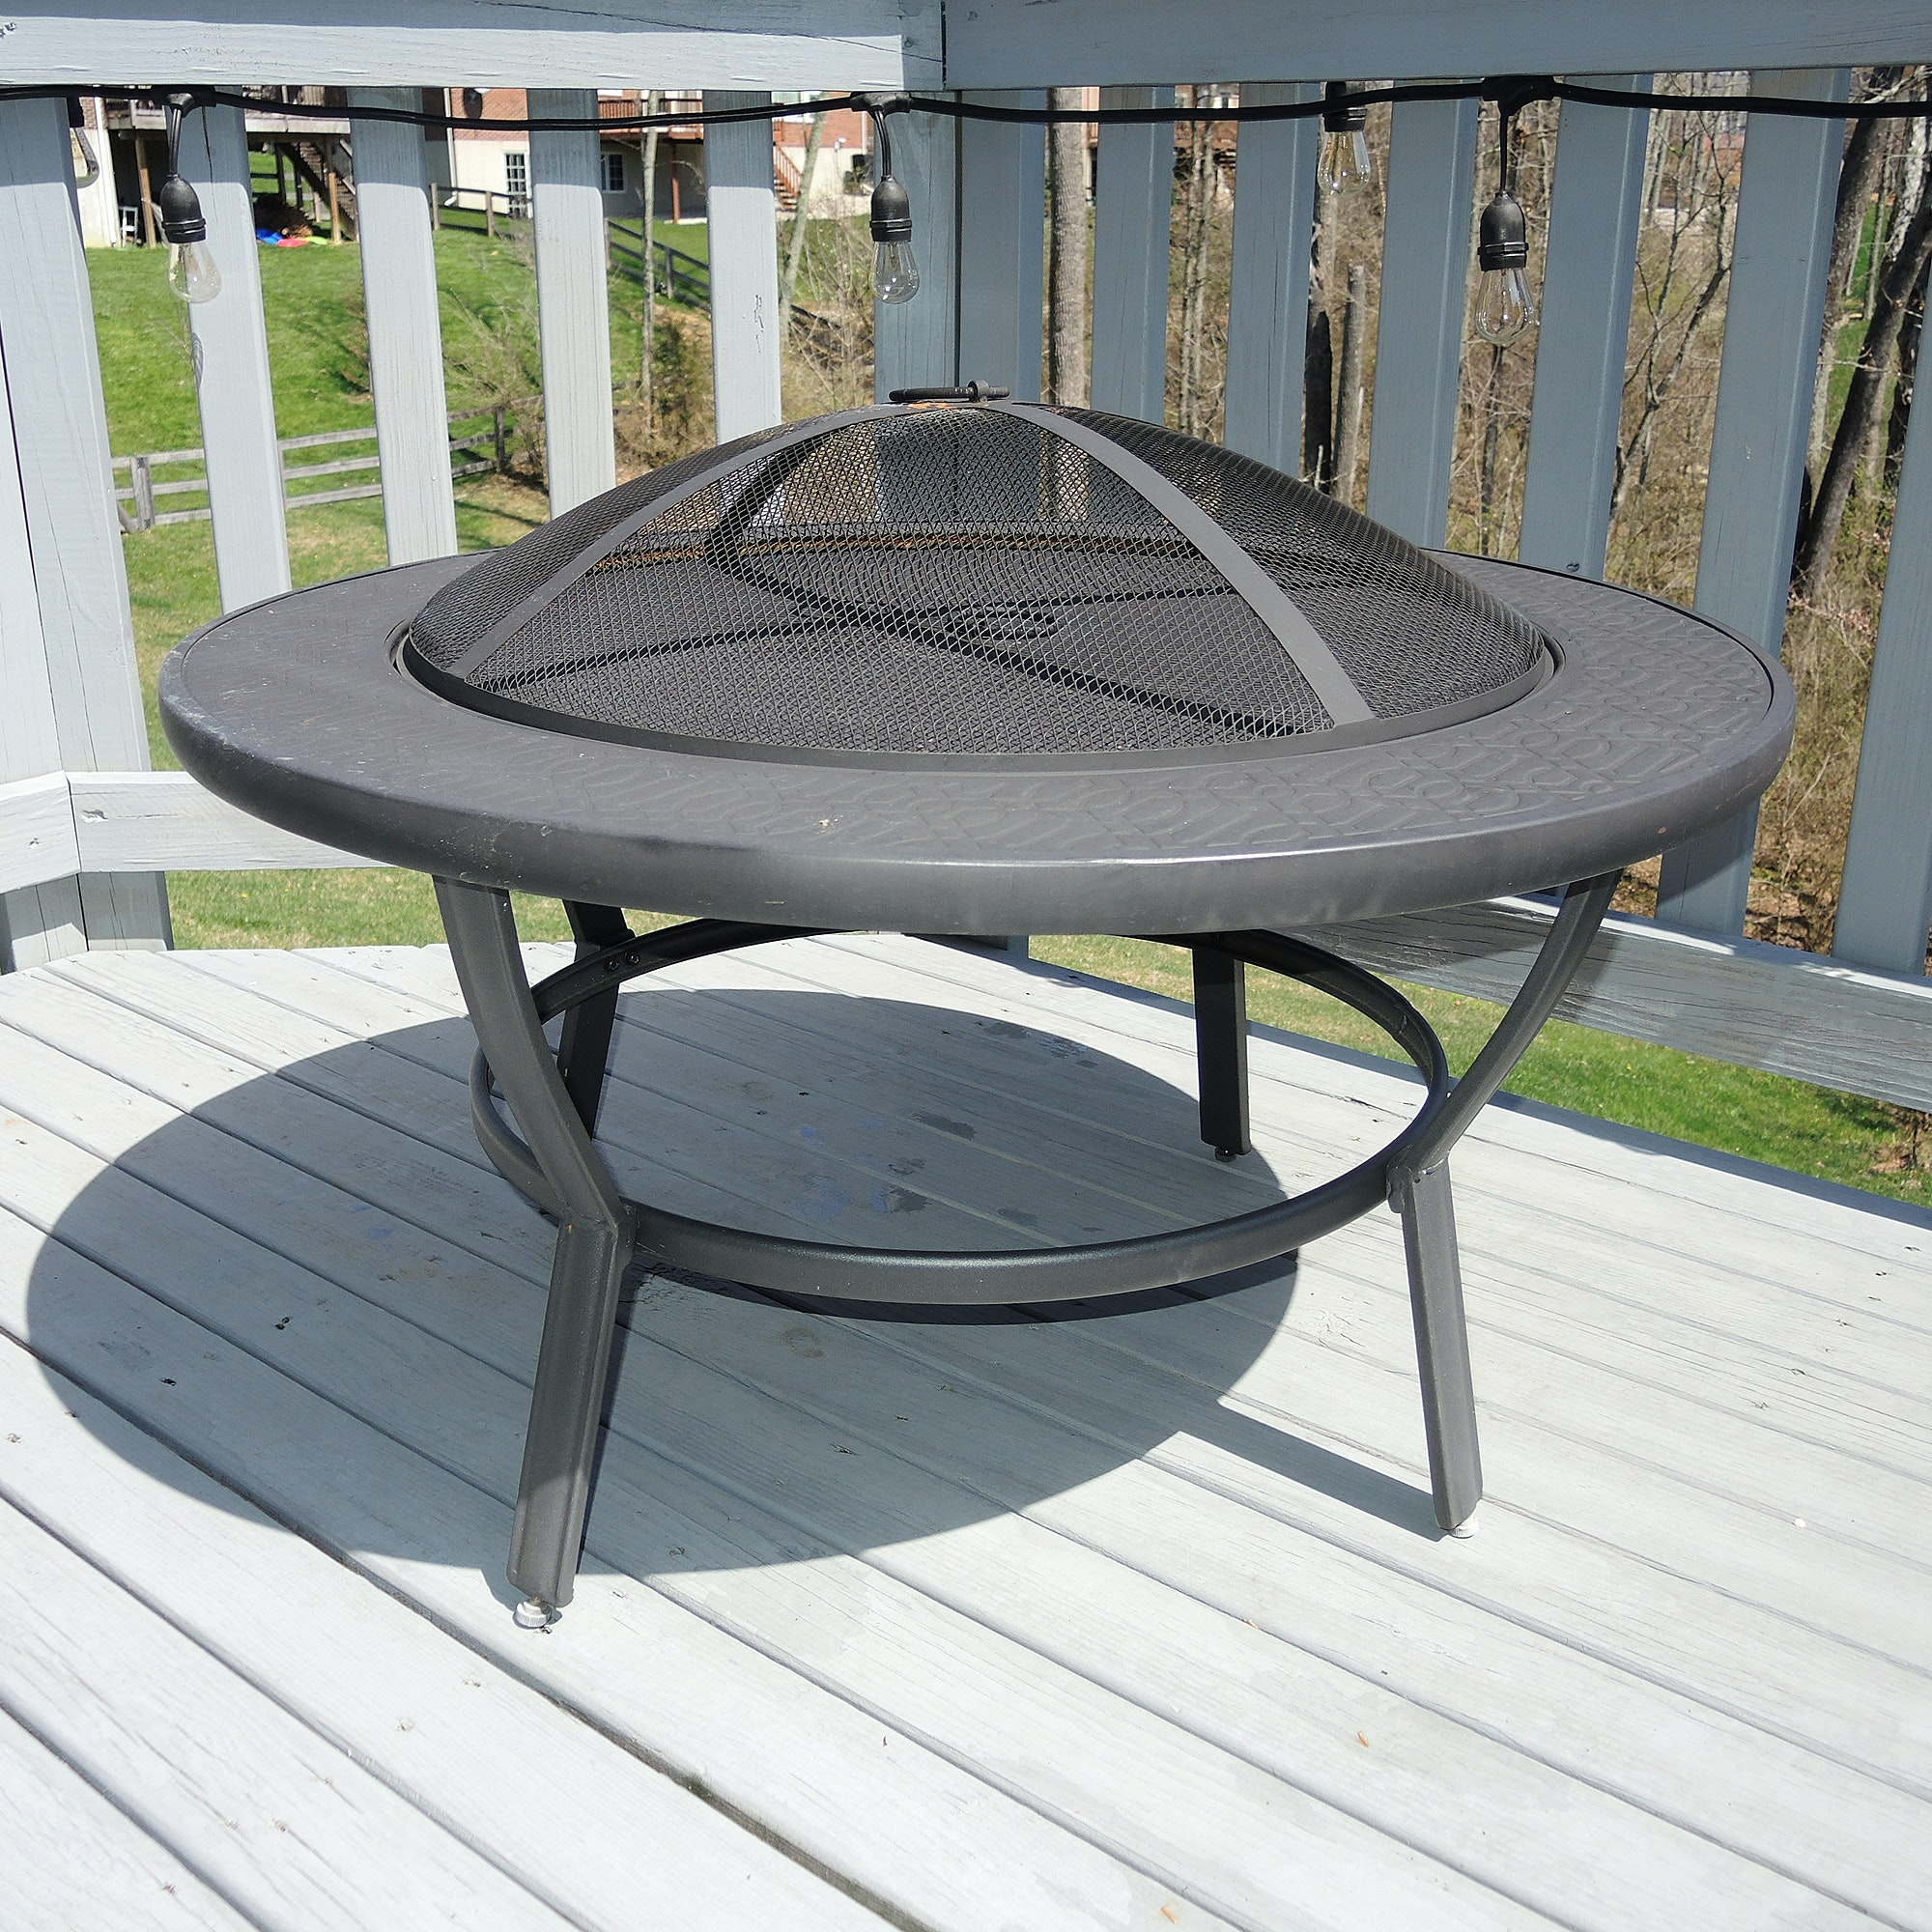 Outdoor Fire Pit with Lid